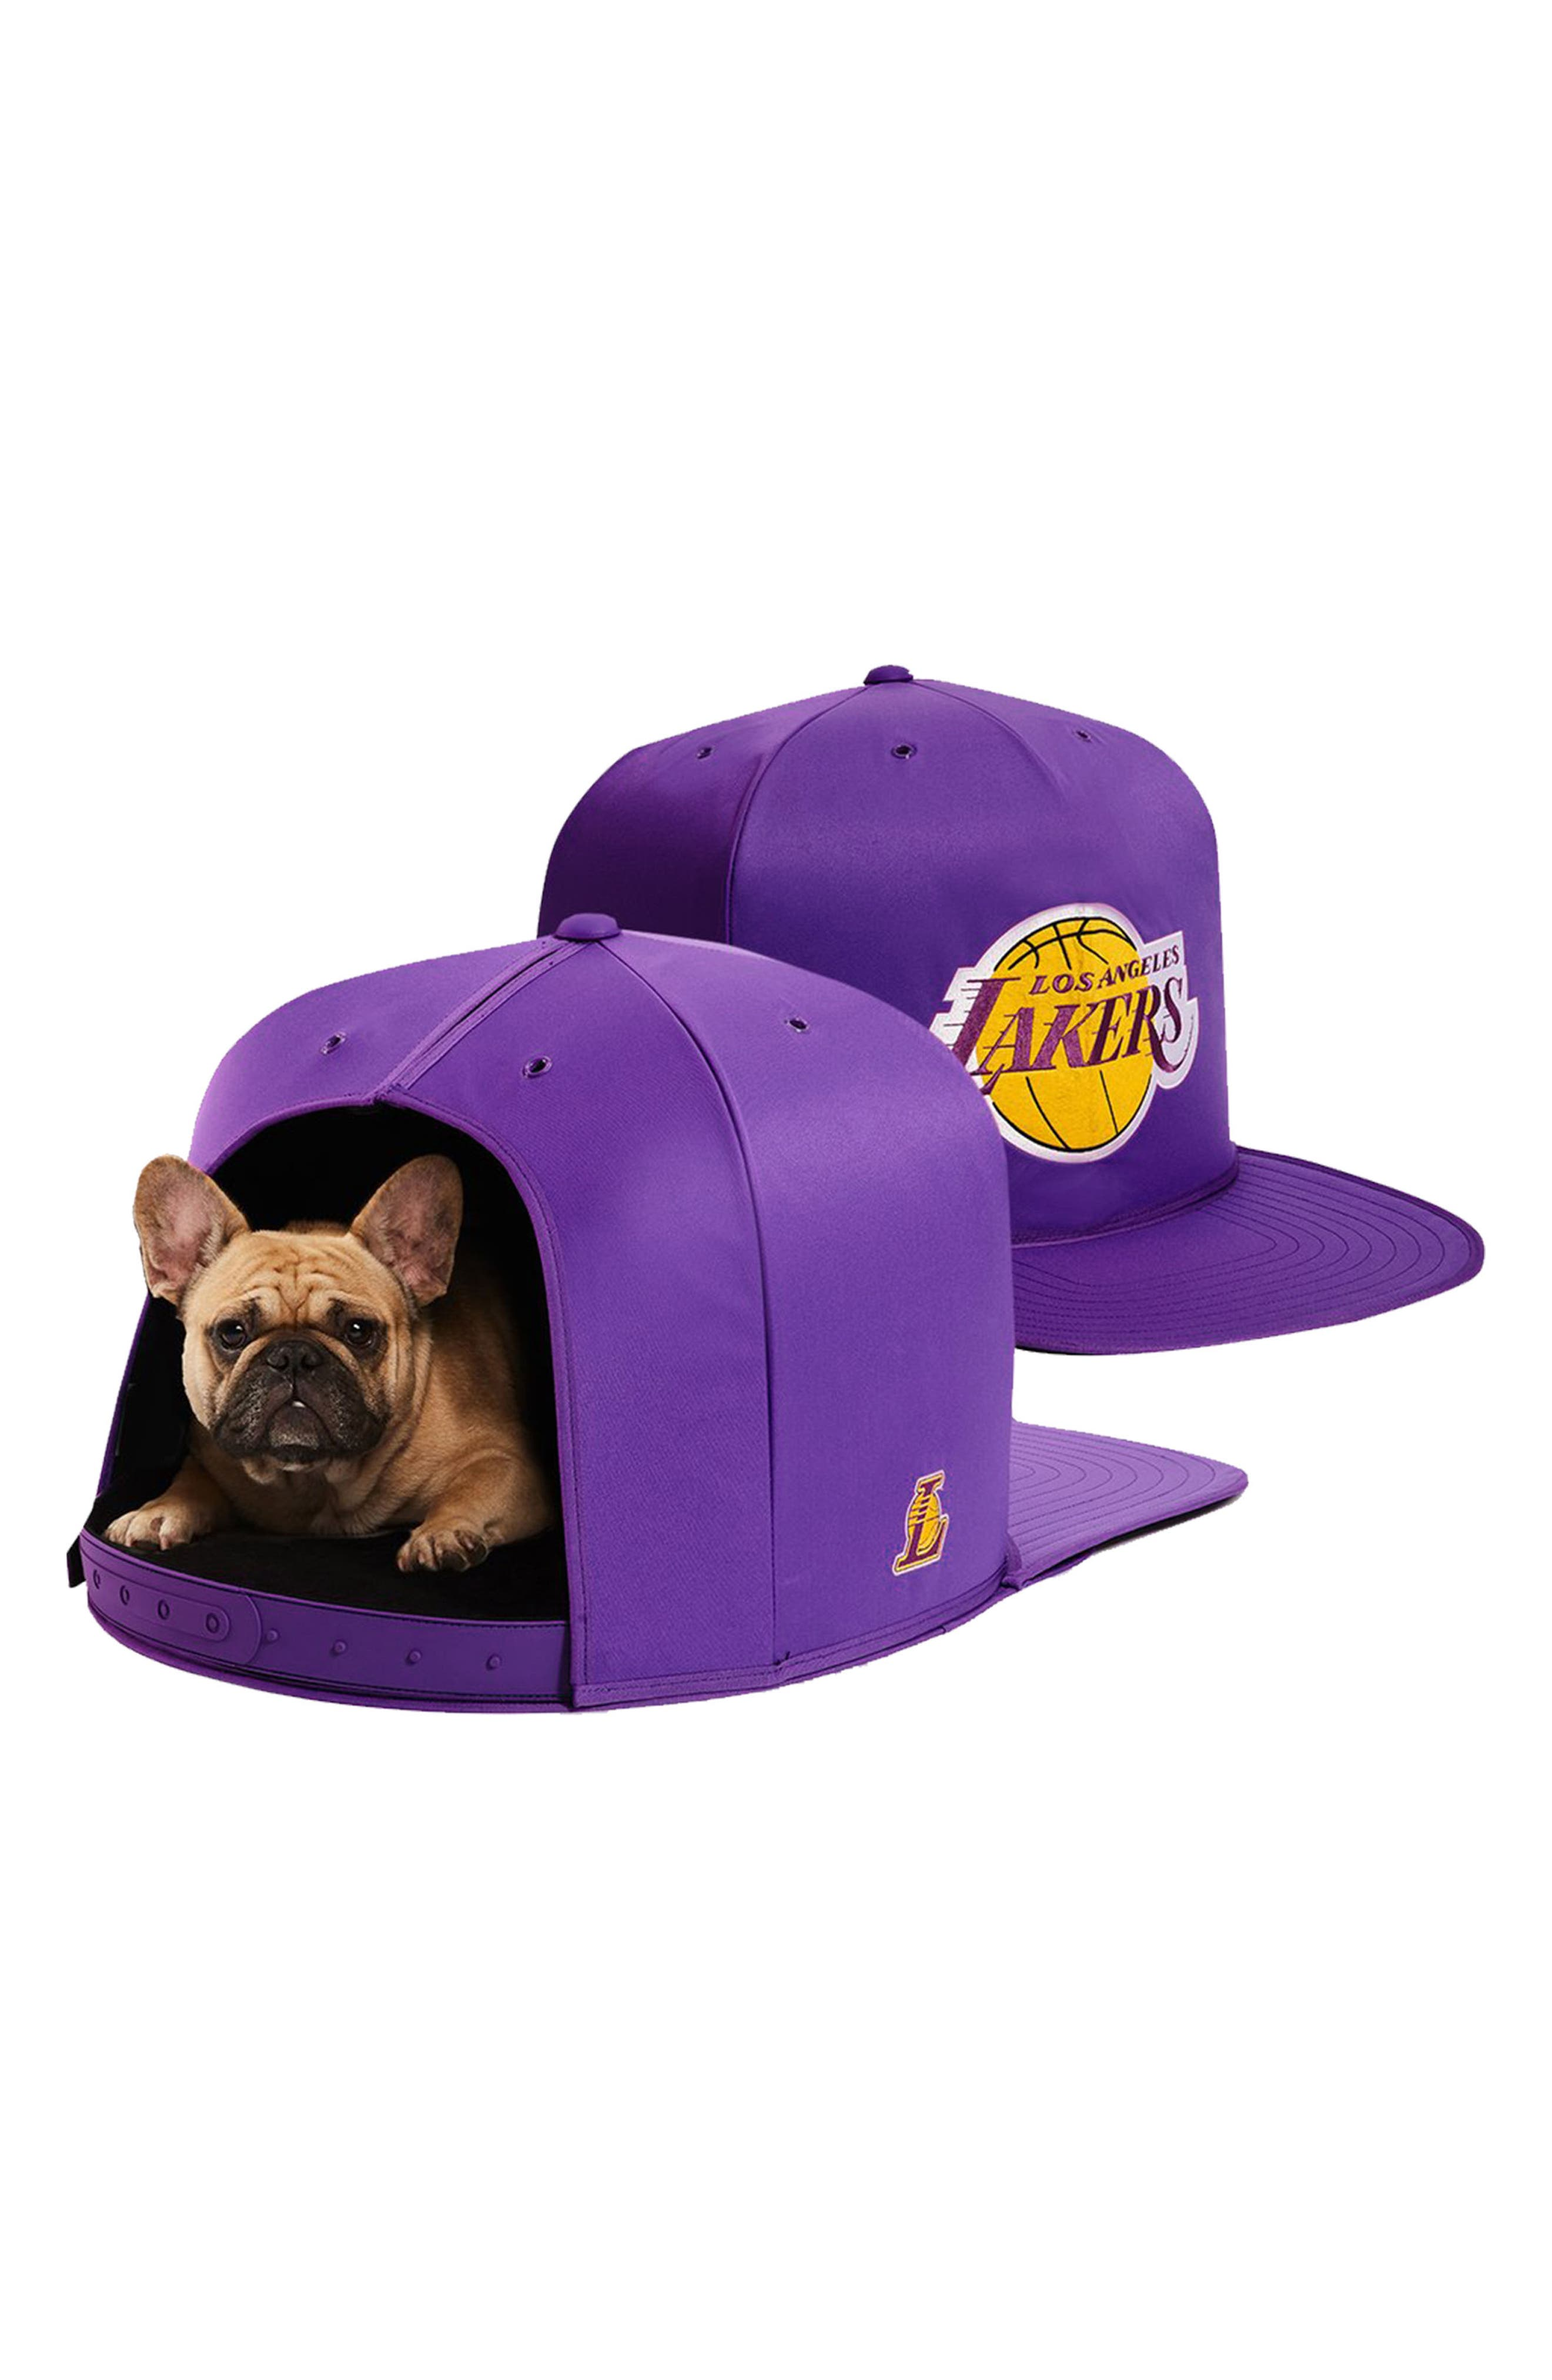 Los Angeles Lakers Pet Bed,                             Alternate thumbnail 4, color,                             500